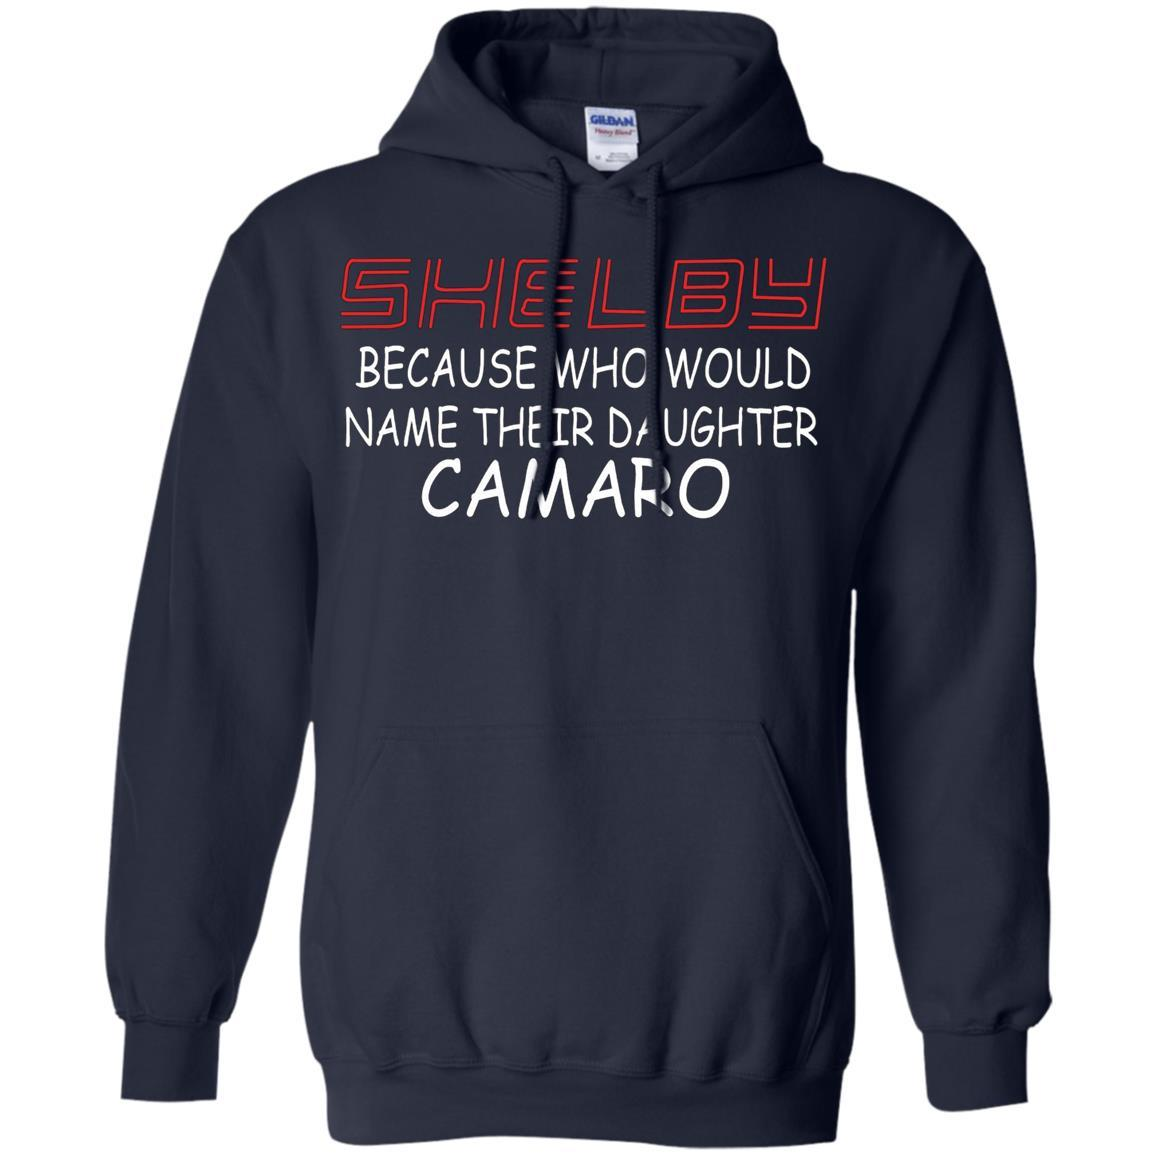 Shelby Because Who Would Name Their Daughter Camaro - Pullover Hoodie Navy / 5XL